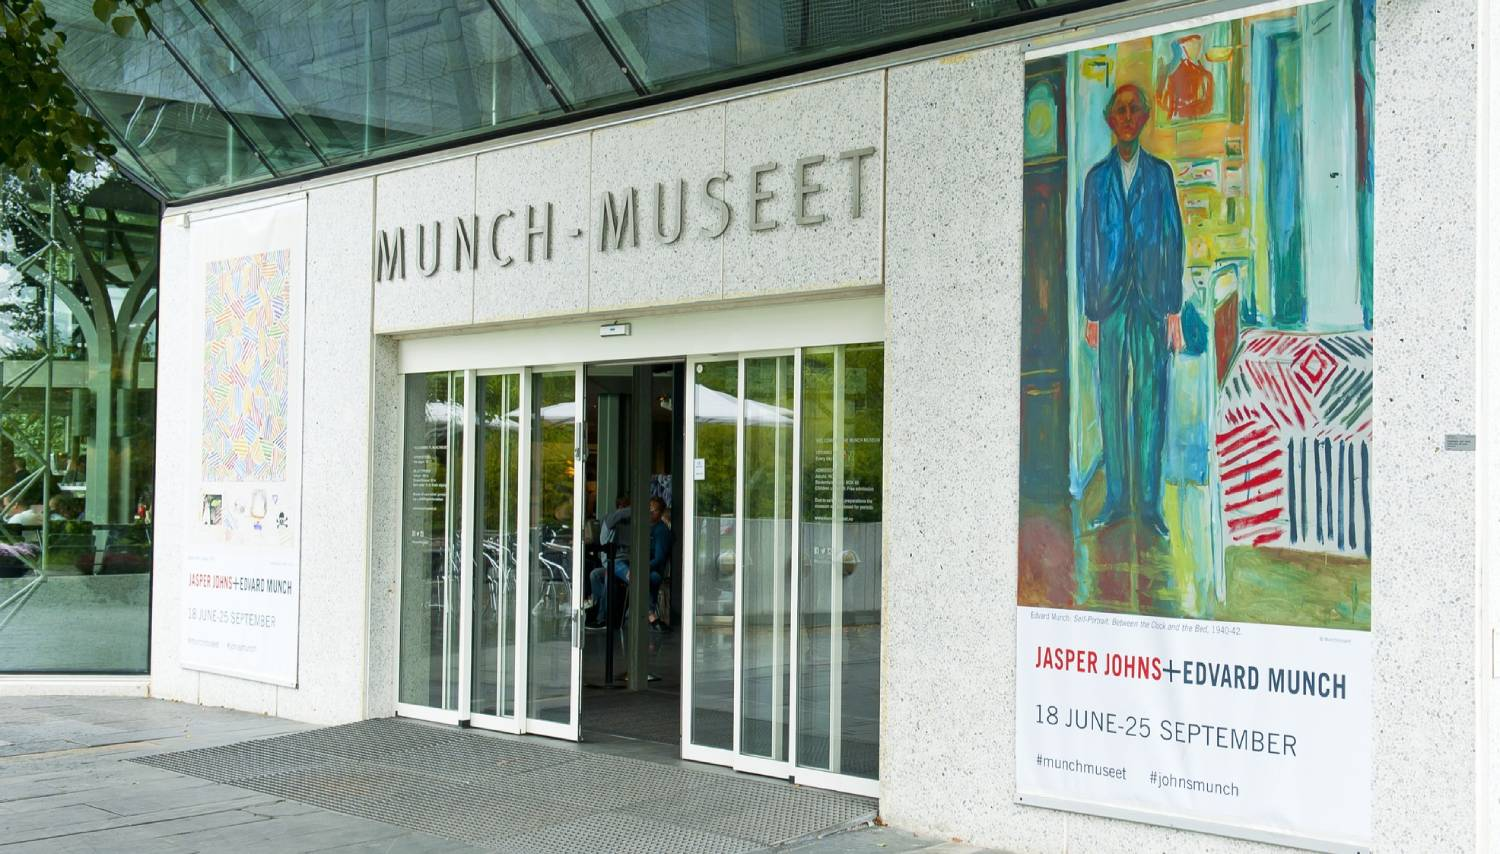 Munch Museum (Munchmuseet) - Things To Do In Oslo